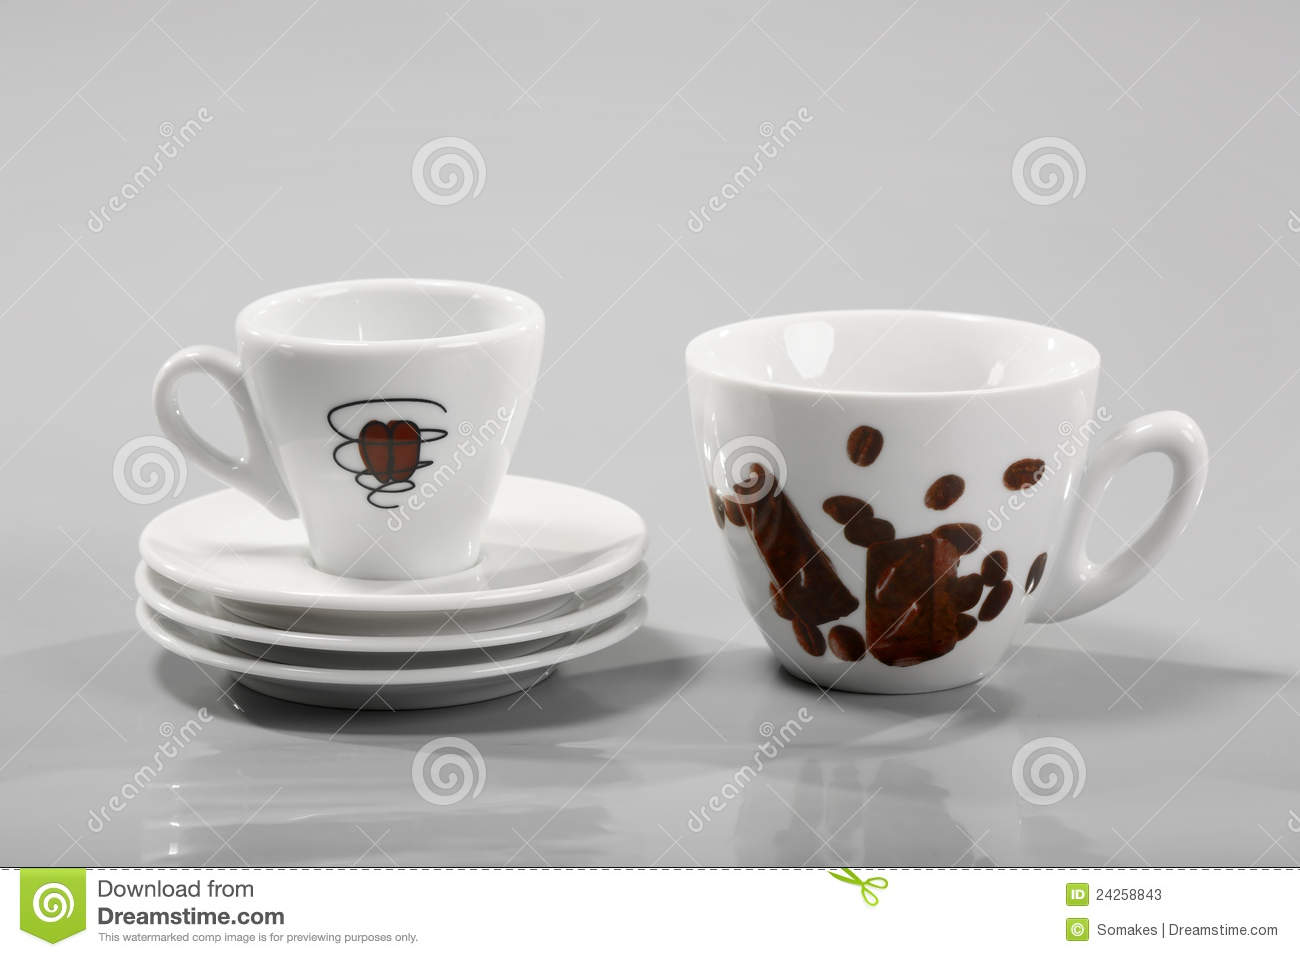 Small Coffee Cups And Saucers Coffee Cups And Saucers Stock Image Image Of View Details 24258843